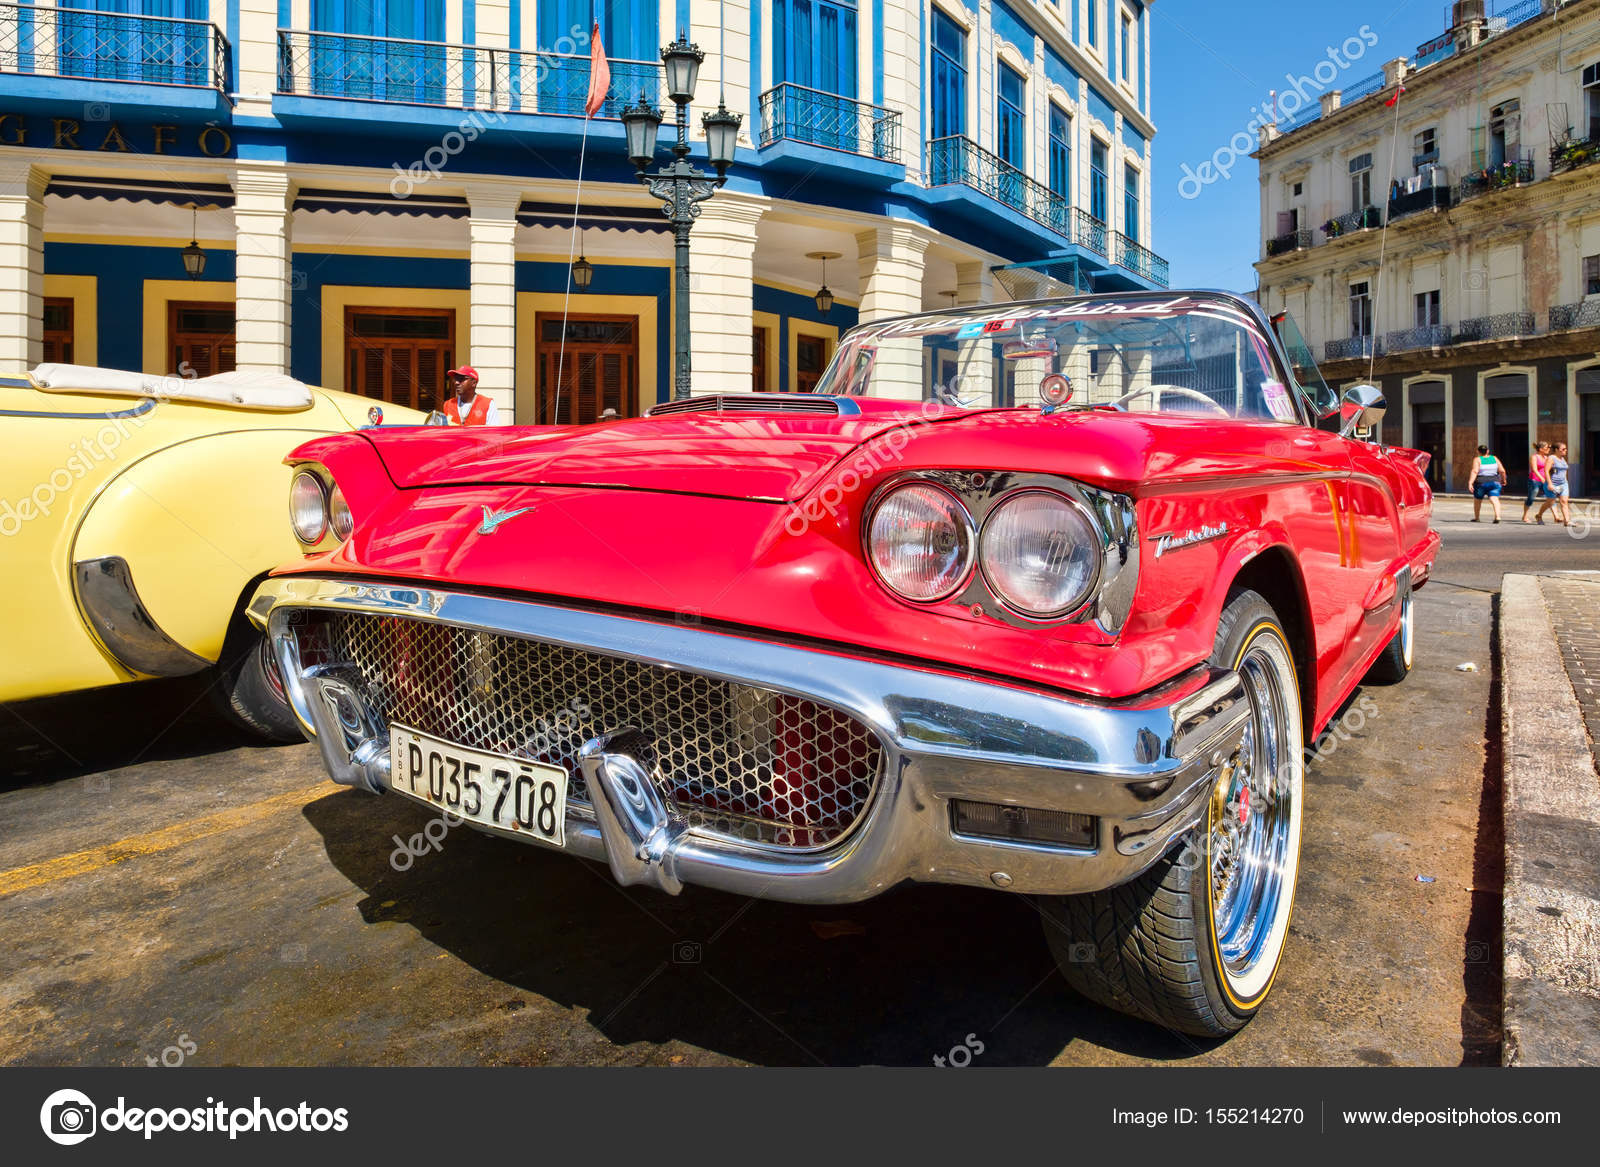 Vintage red Ford Thunderbird convertible car parked in Old Havana ...